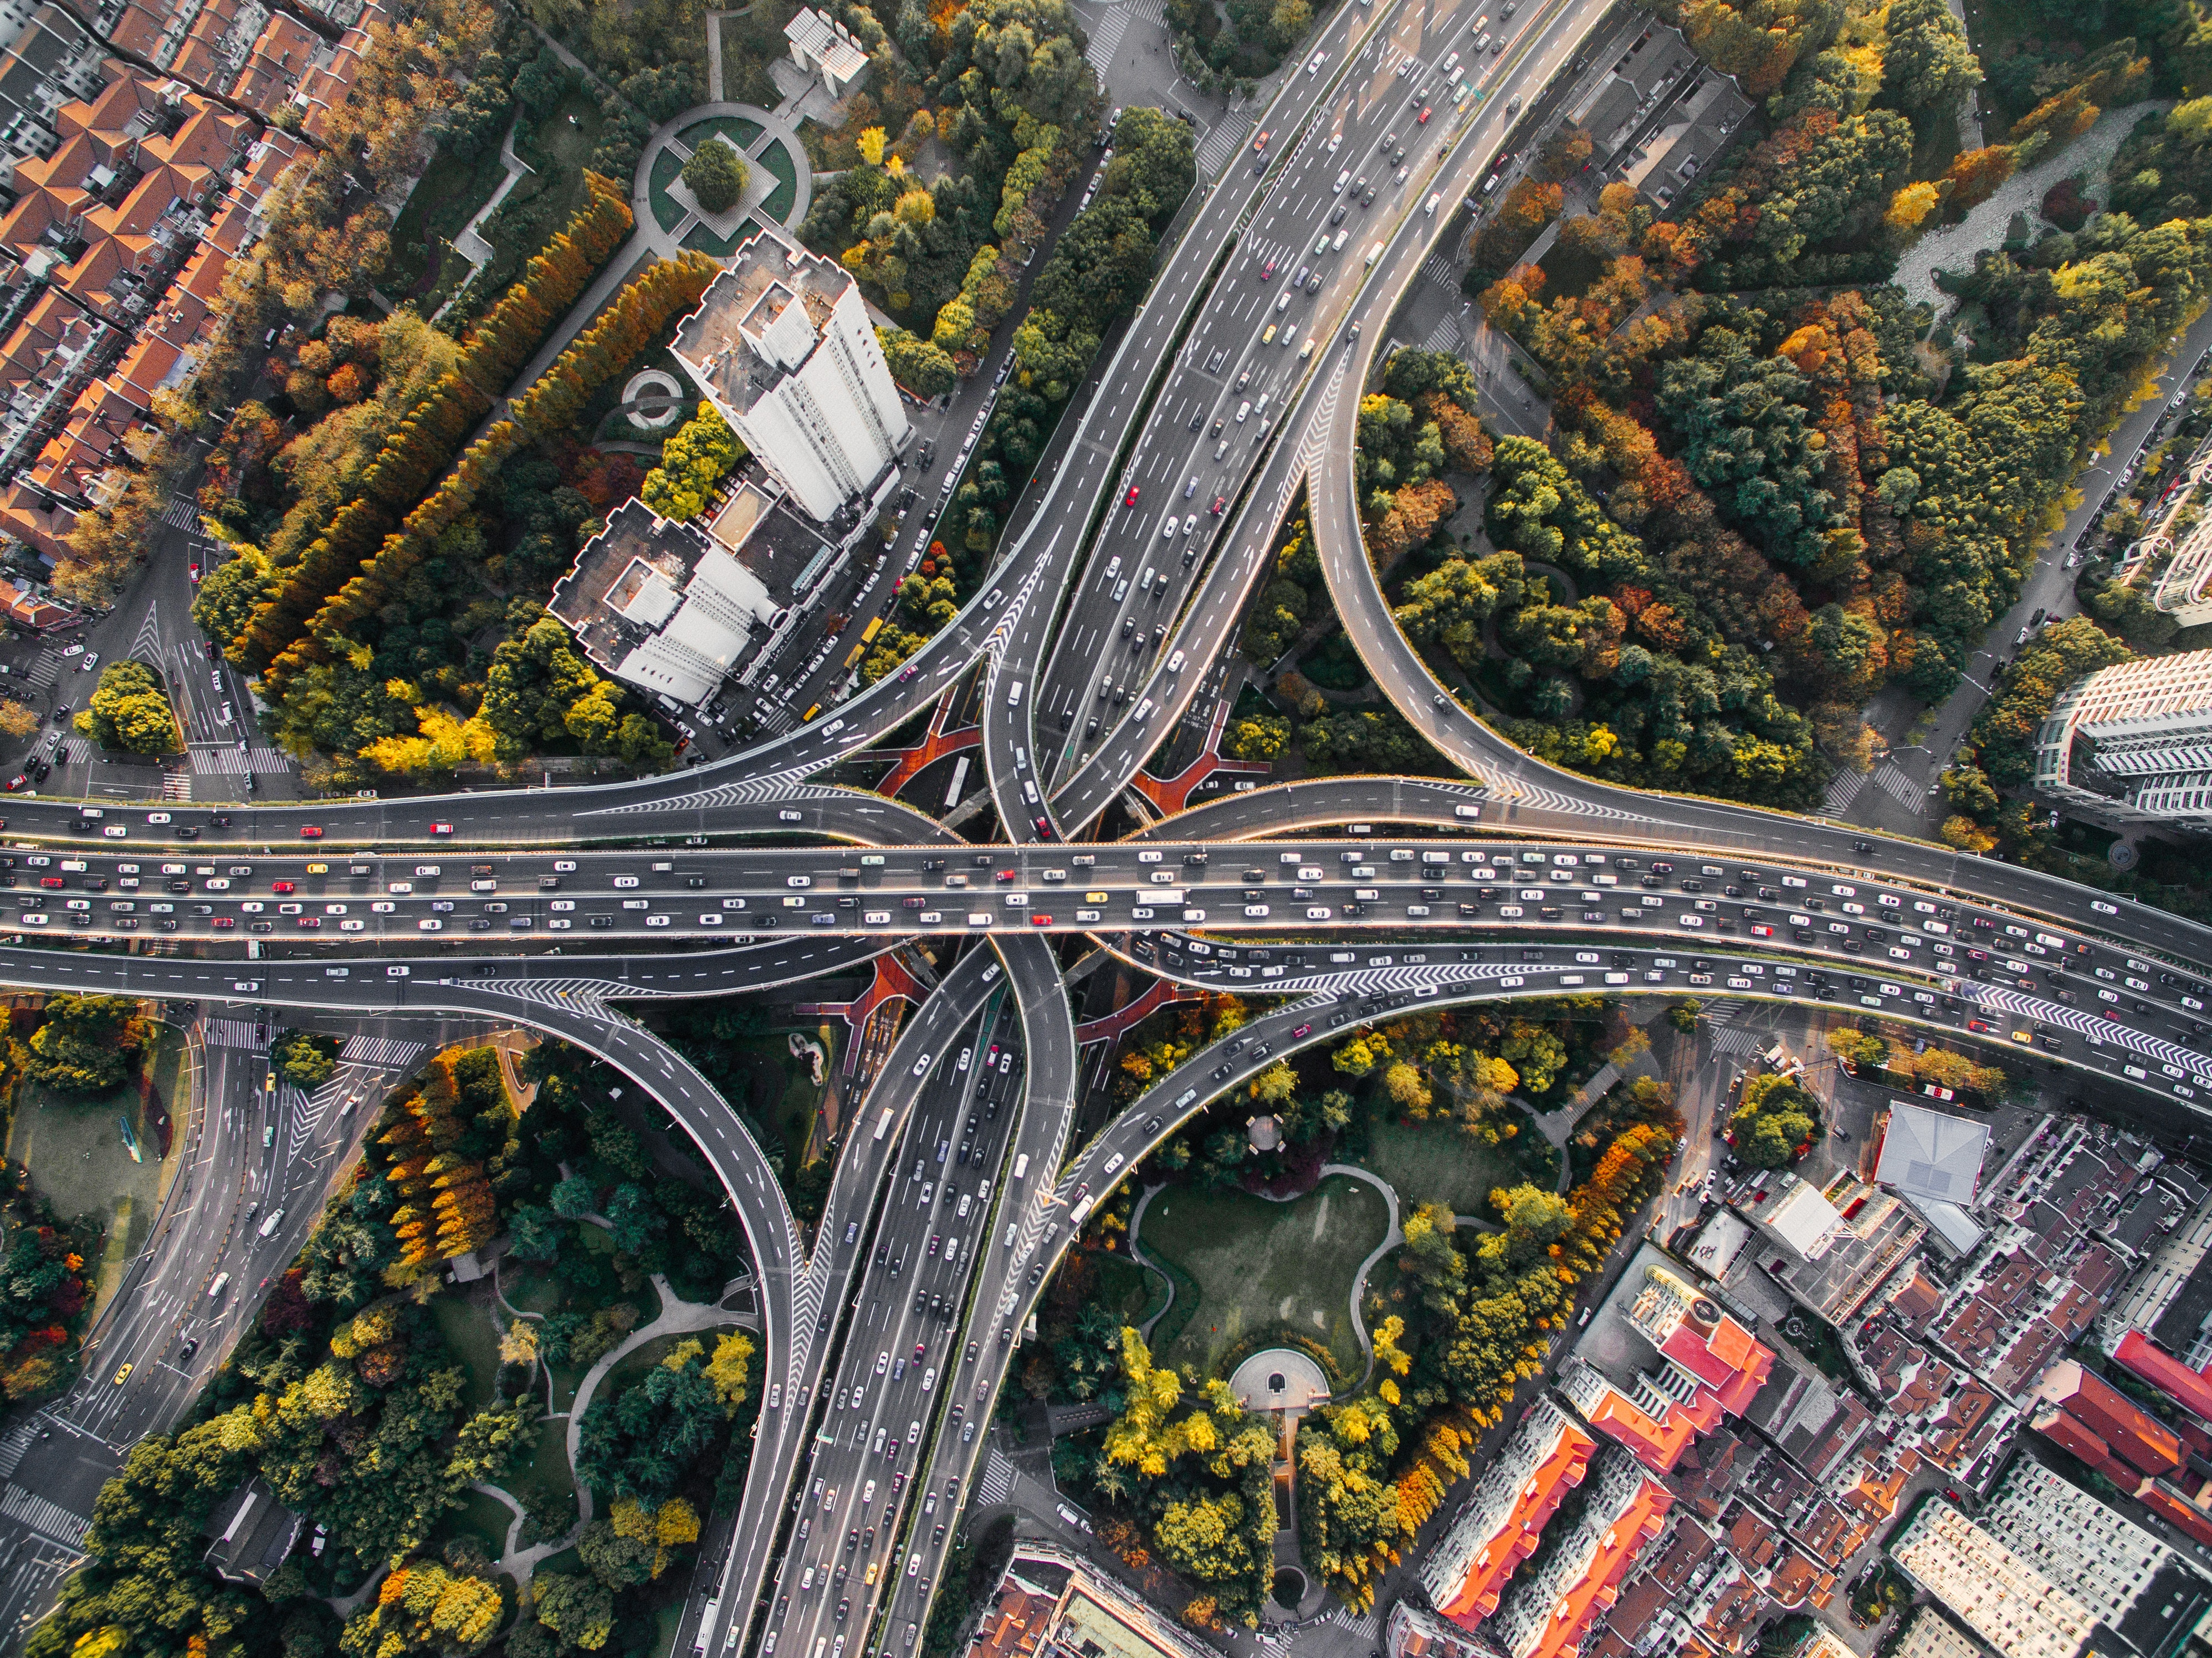 84552 download wallpaper Bridges, Cities, Roads, View From Above, Traffic, Movement, China, Shanghai, Crossroads, Crossroad screensavers and pictures for free